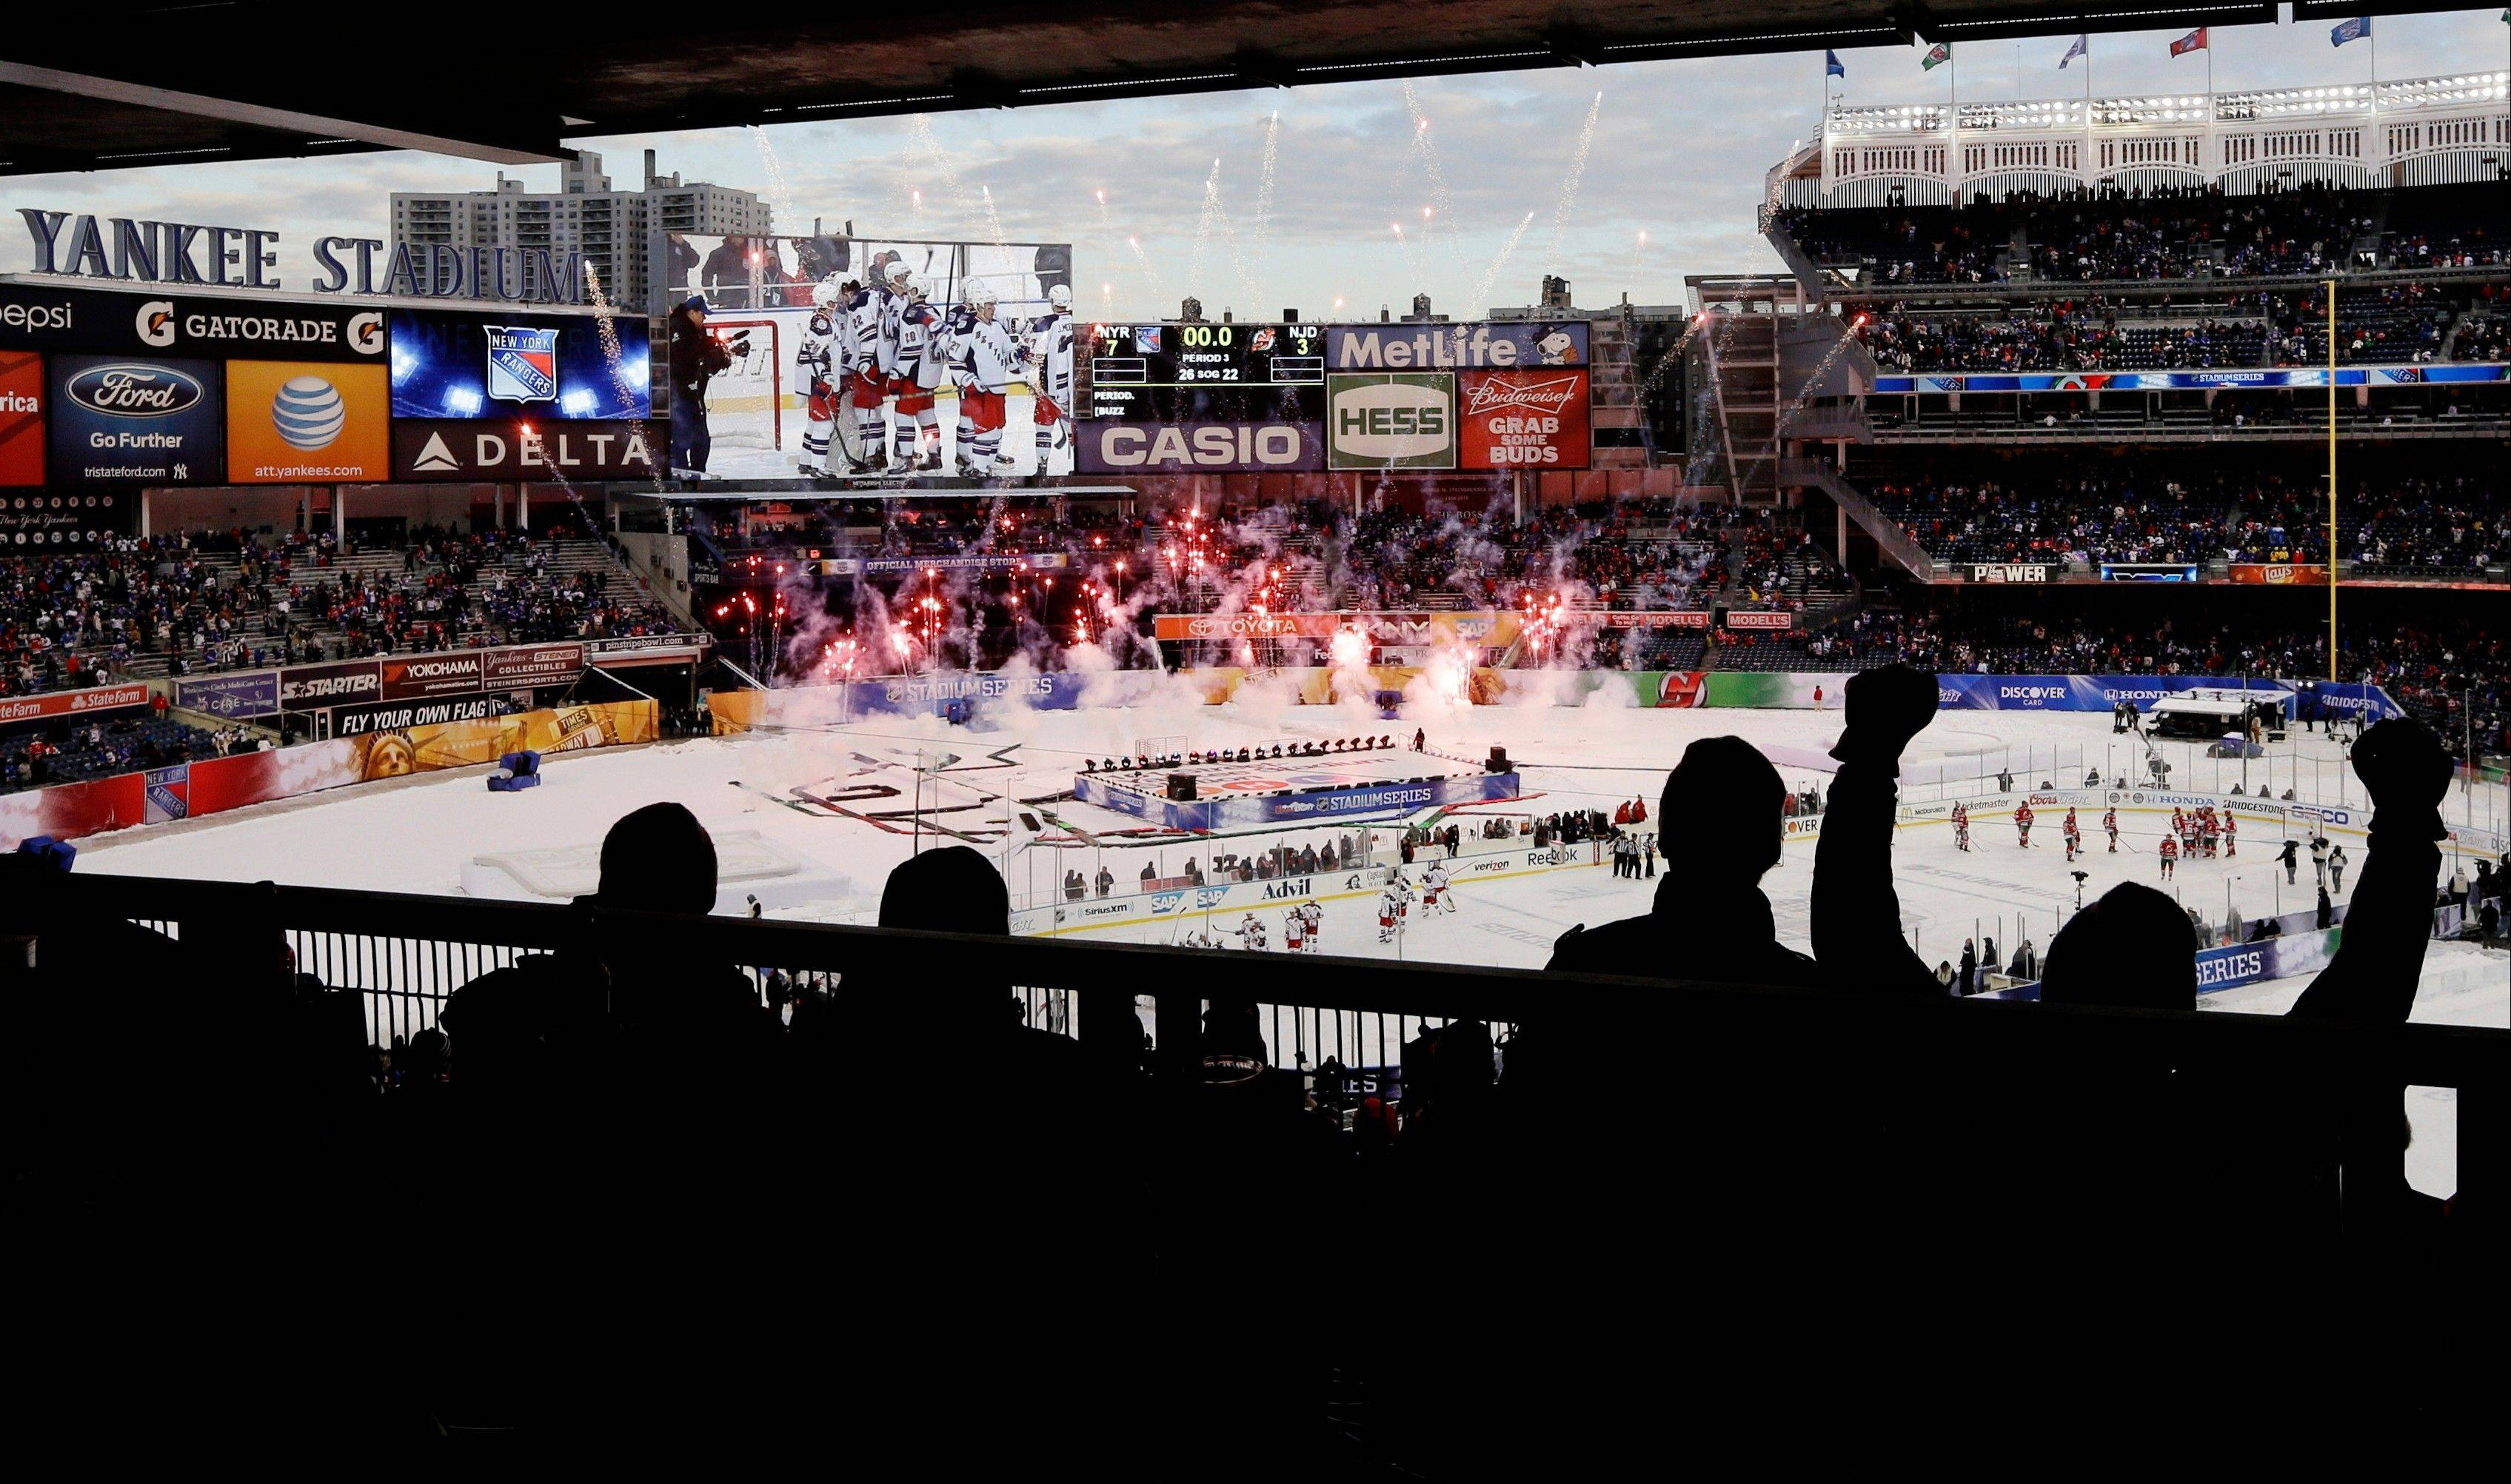 New York Rangers fans cheer during a pyrotechnics display after an outdoor NHL hockey game against the New Jersey Devils Sunday, Jan. 26, 2014, at Yankee Stadium in New York. The Rangers won the game 7-3. (AP Photo/Frank Franklin II)